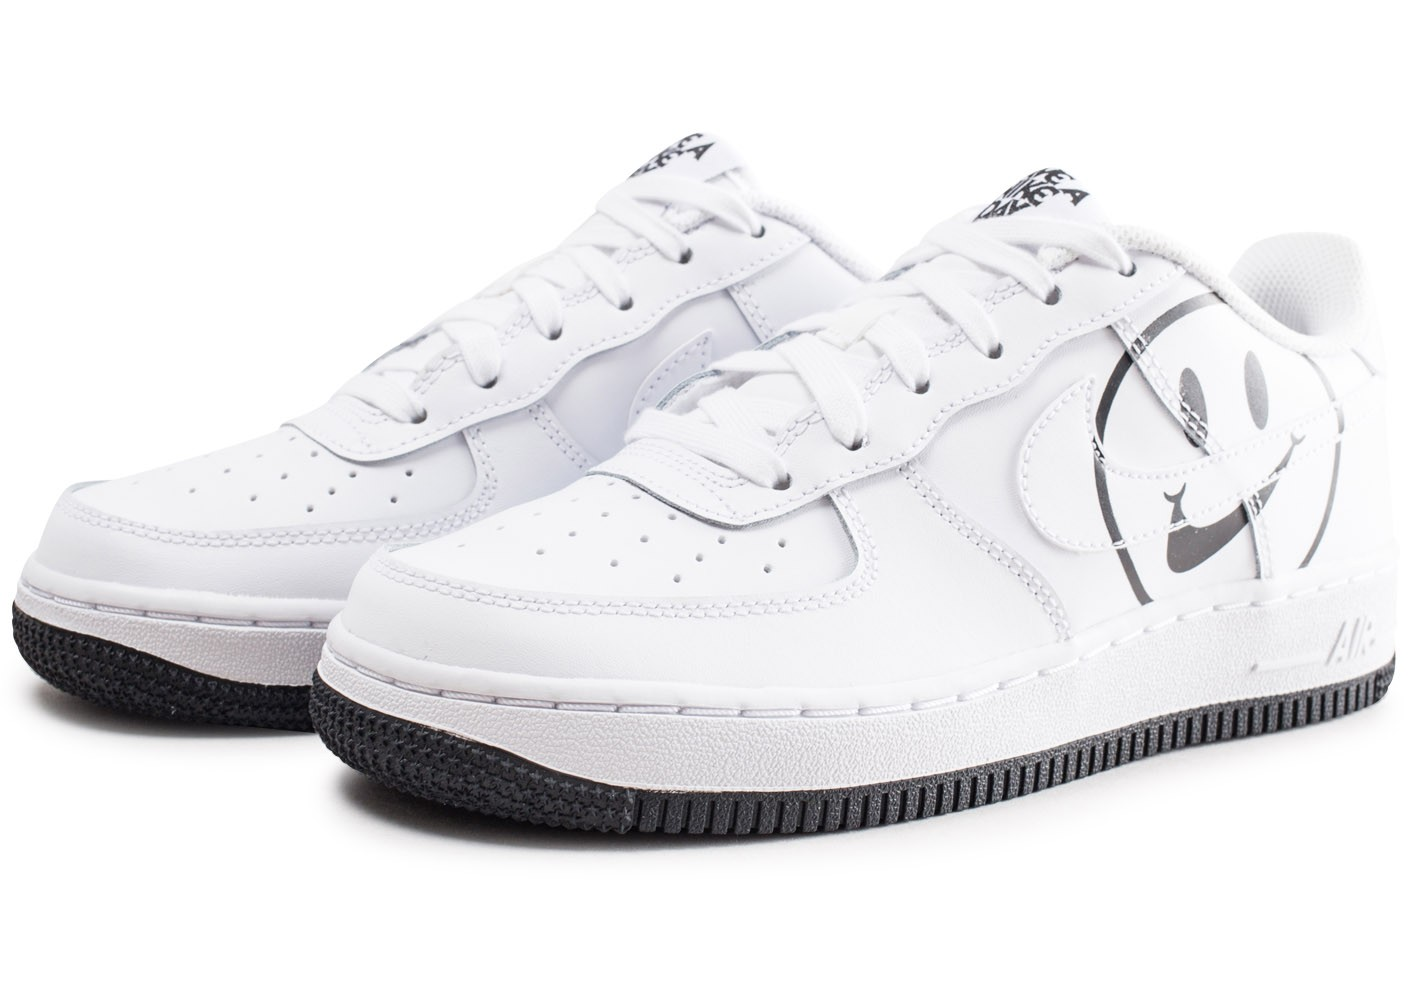 free shipping 01da7 50cc5 ... Chaussures Nike Air Force 1 LV8 blanche Have a Nike Day junior vue  intérieure ...